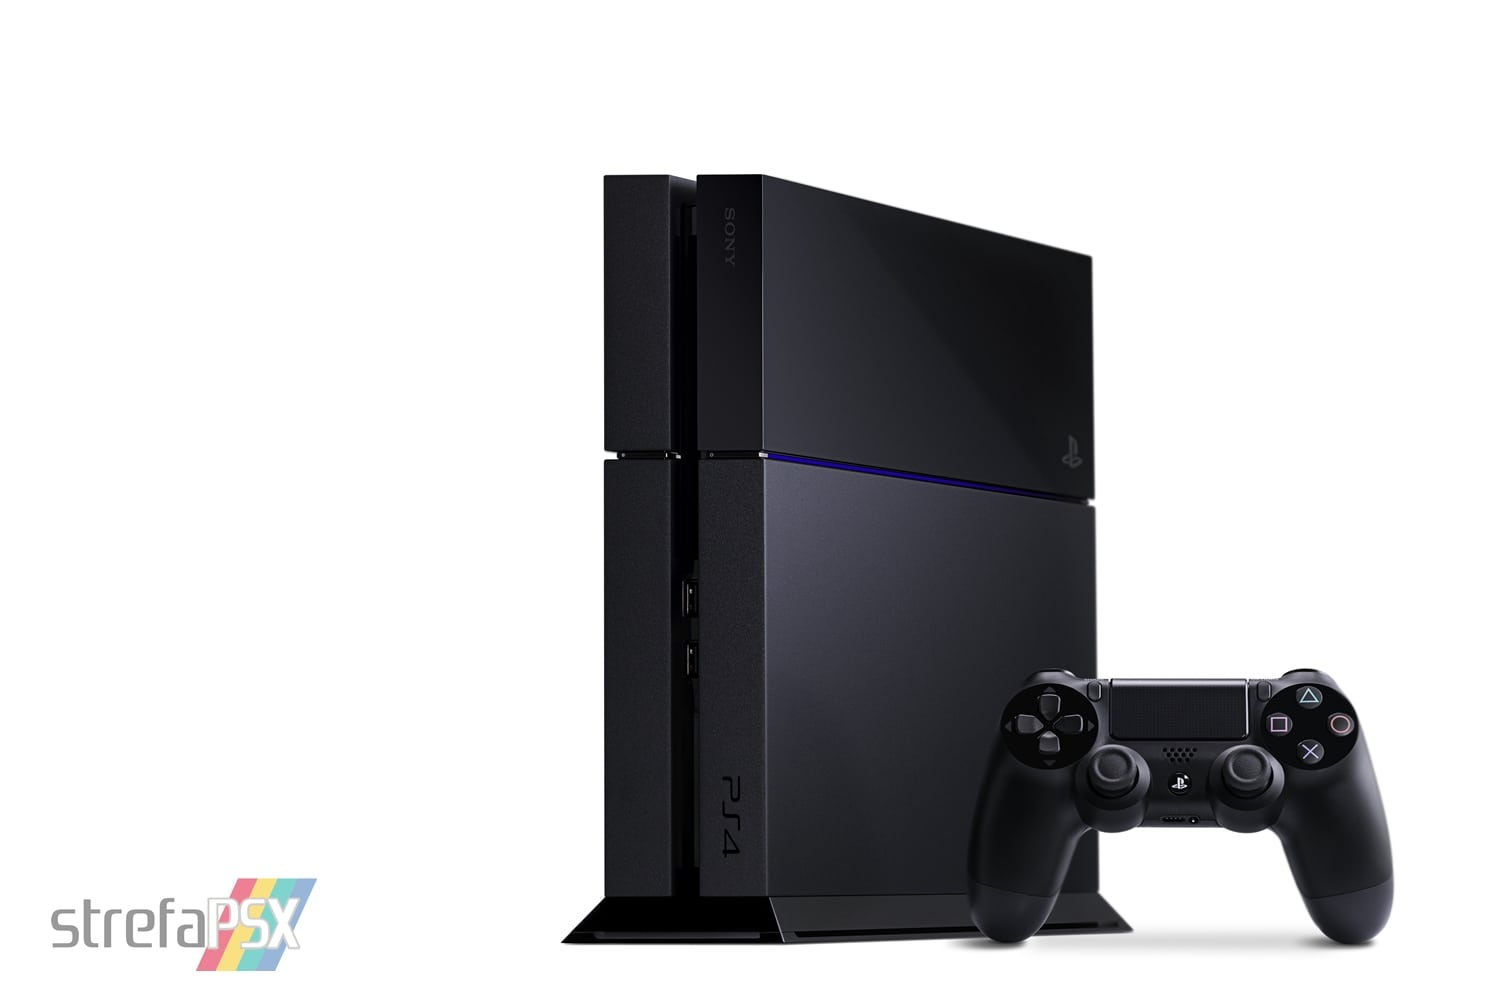 "ps4 cuh 10xxA 500gb 17 - PlayStation 4 FAT 1TB Ultimate Player Edition CUH-11xxB ""Jet Black"""